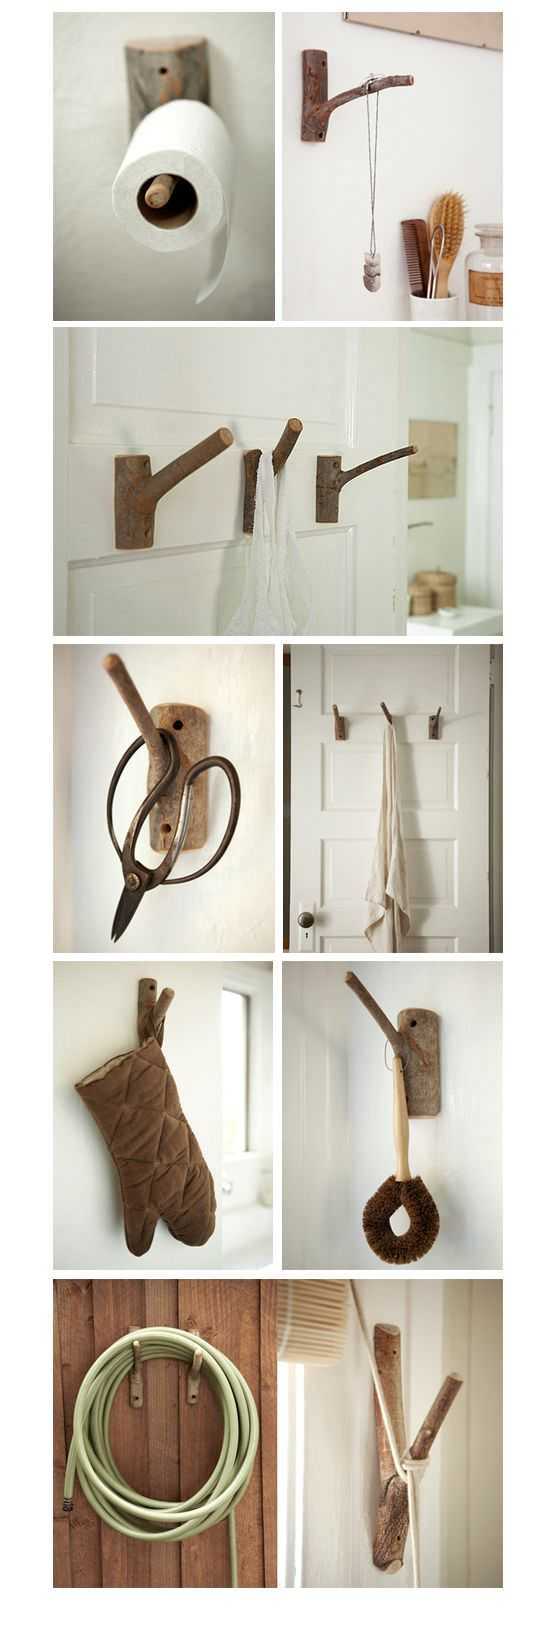 DIY: Branch Hooks #Branch, #DIY, #Hooks, #Upcycled, #Wood